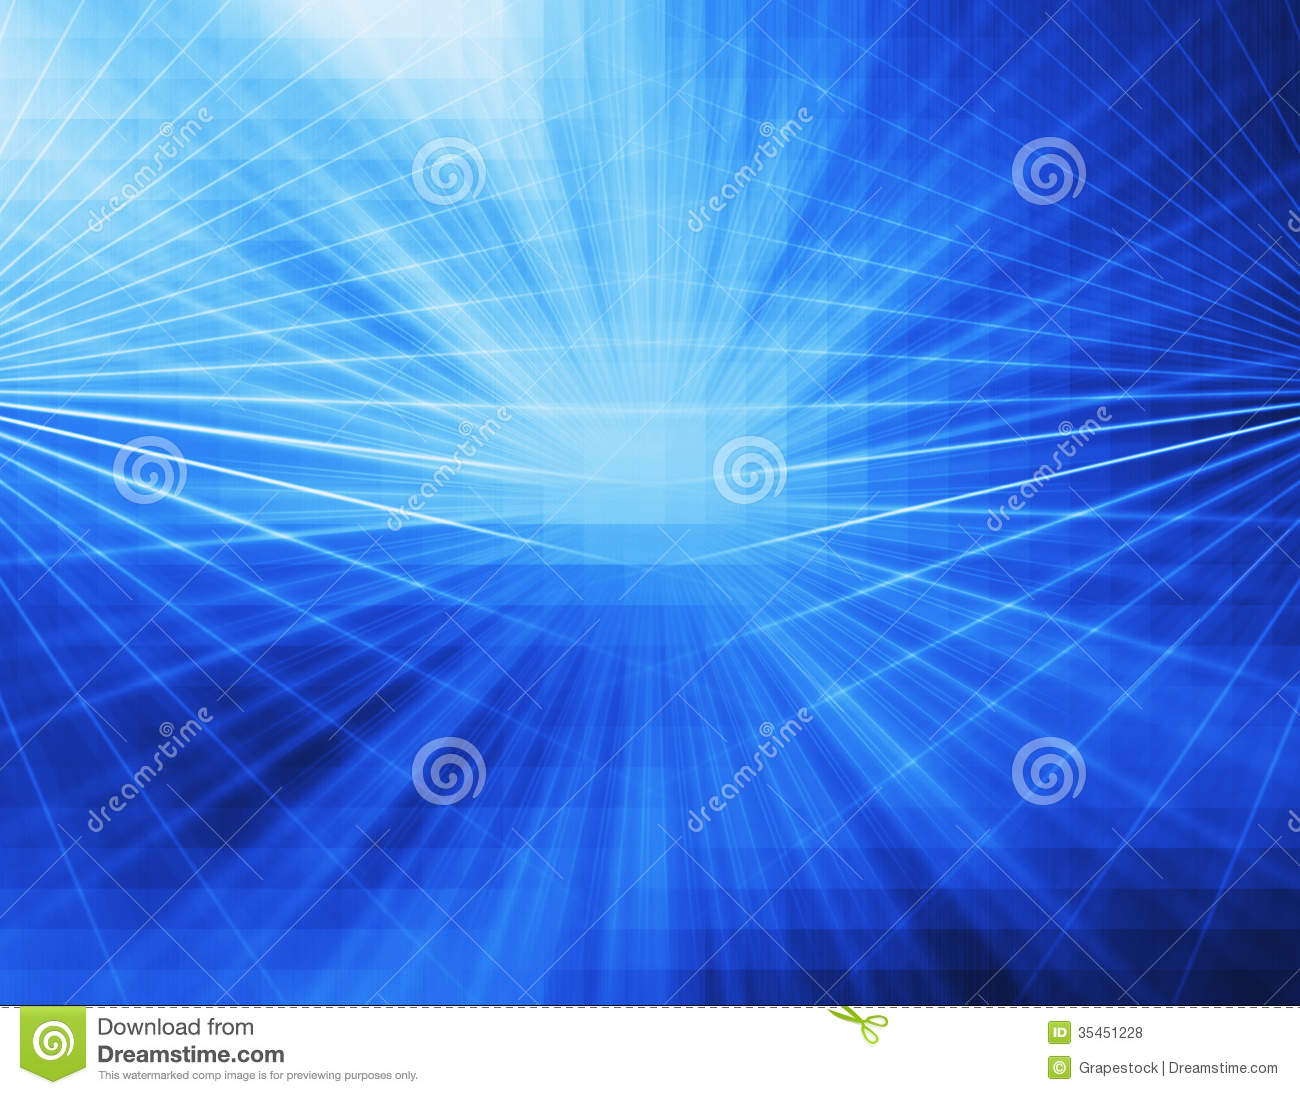 Abstract Tech Background Royalty Free Stock Photography